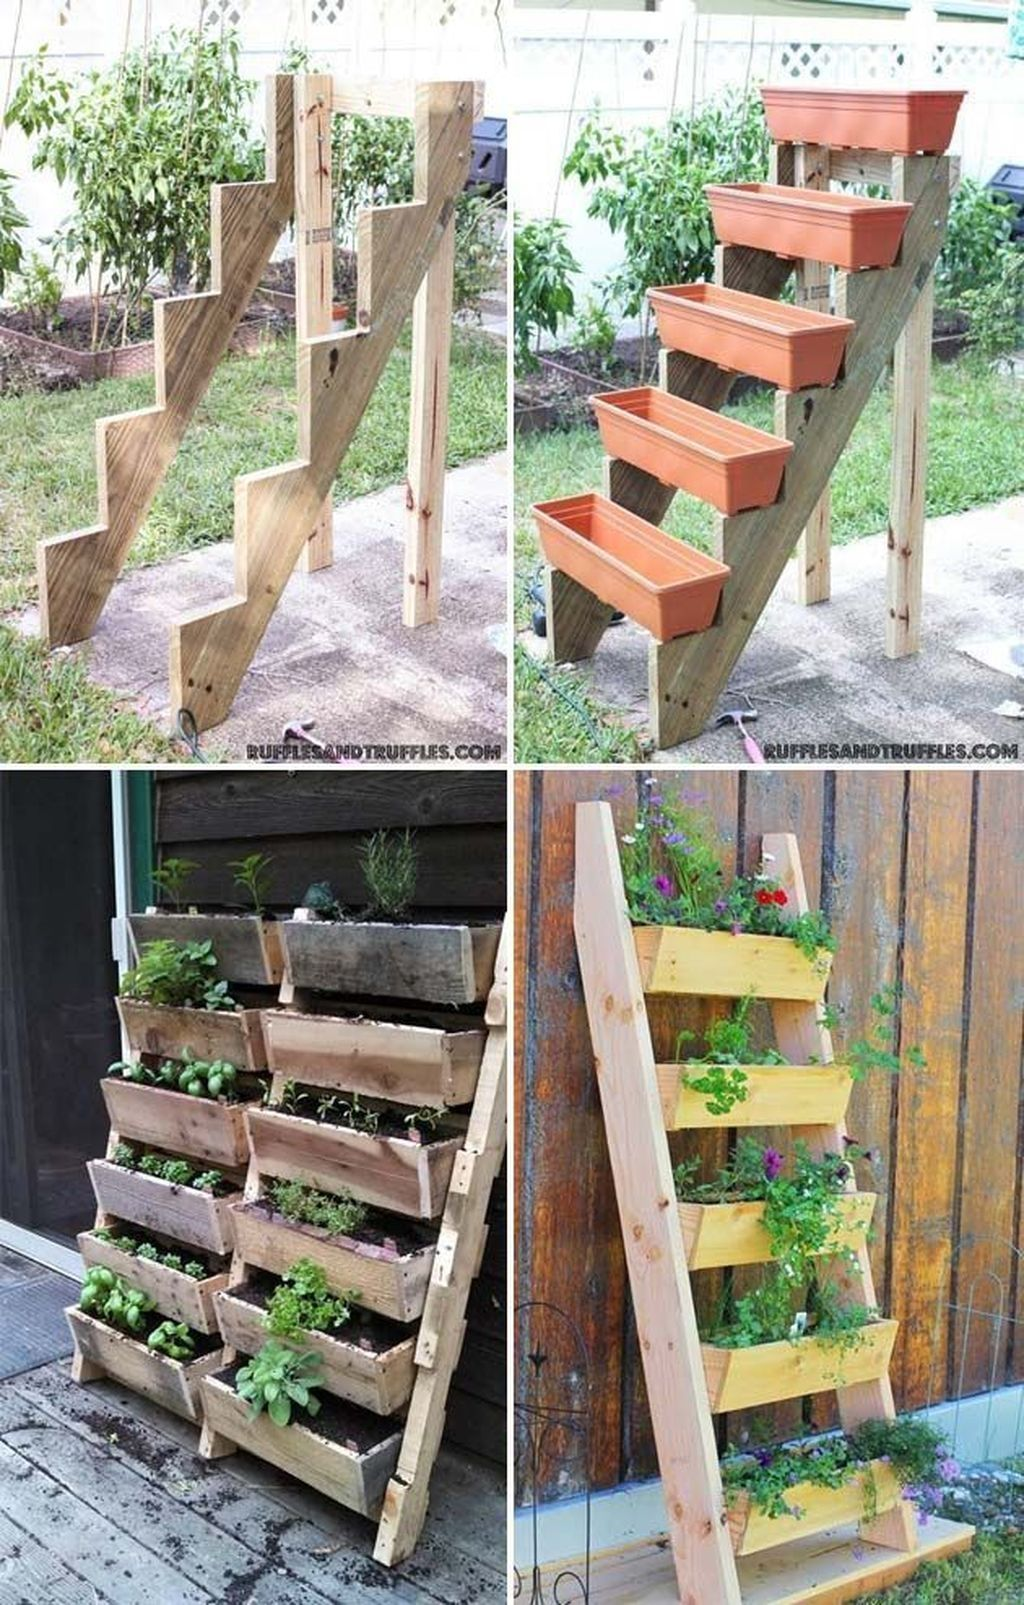 40 lovely diy garden planter ideas to enhance your home on favorite beautiful garden design ideas for enhance your yard tips for gardening id=78008